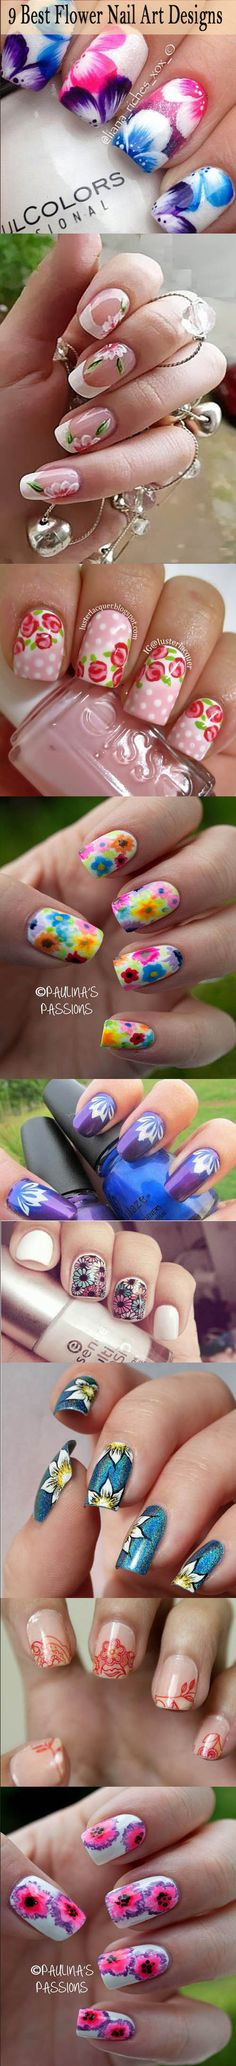 Best Flower Nail Art Designs | See more at http://www.nailsss.com/...  | See more at http://www.nailsss.com/colorful-nail-designs/2/